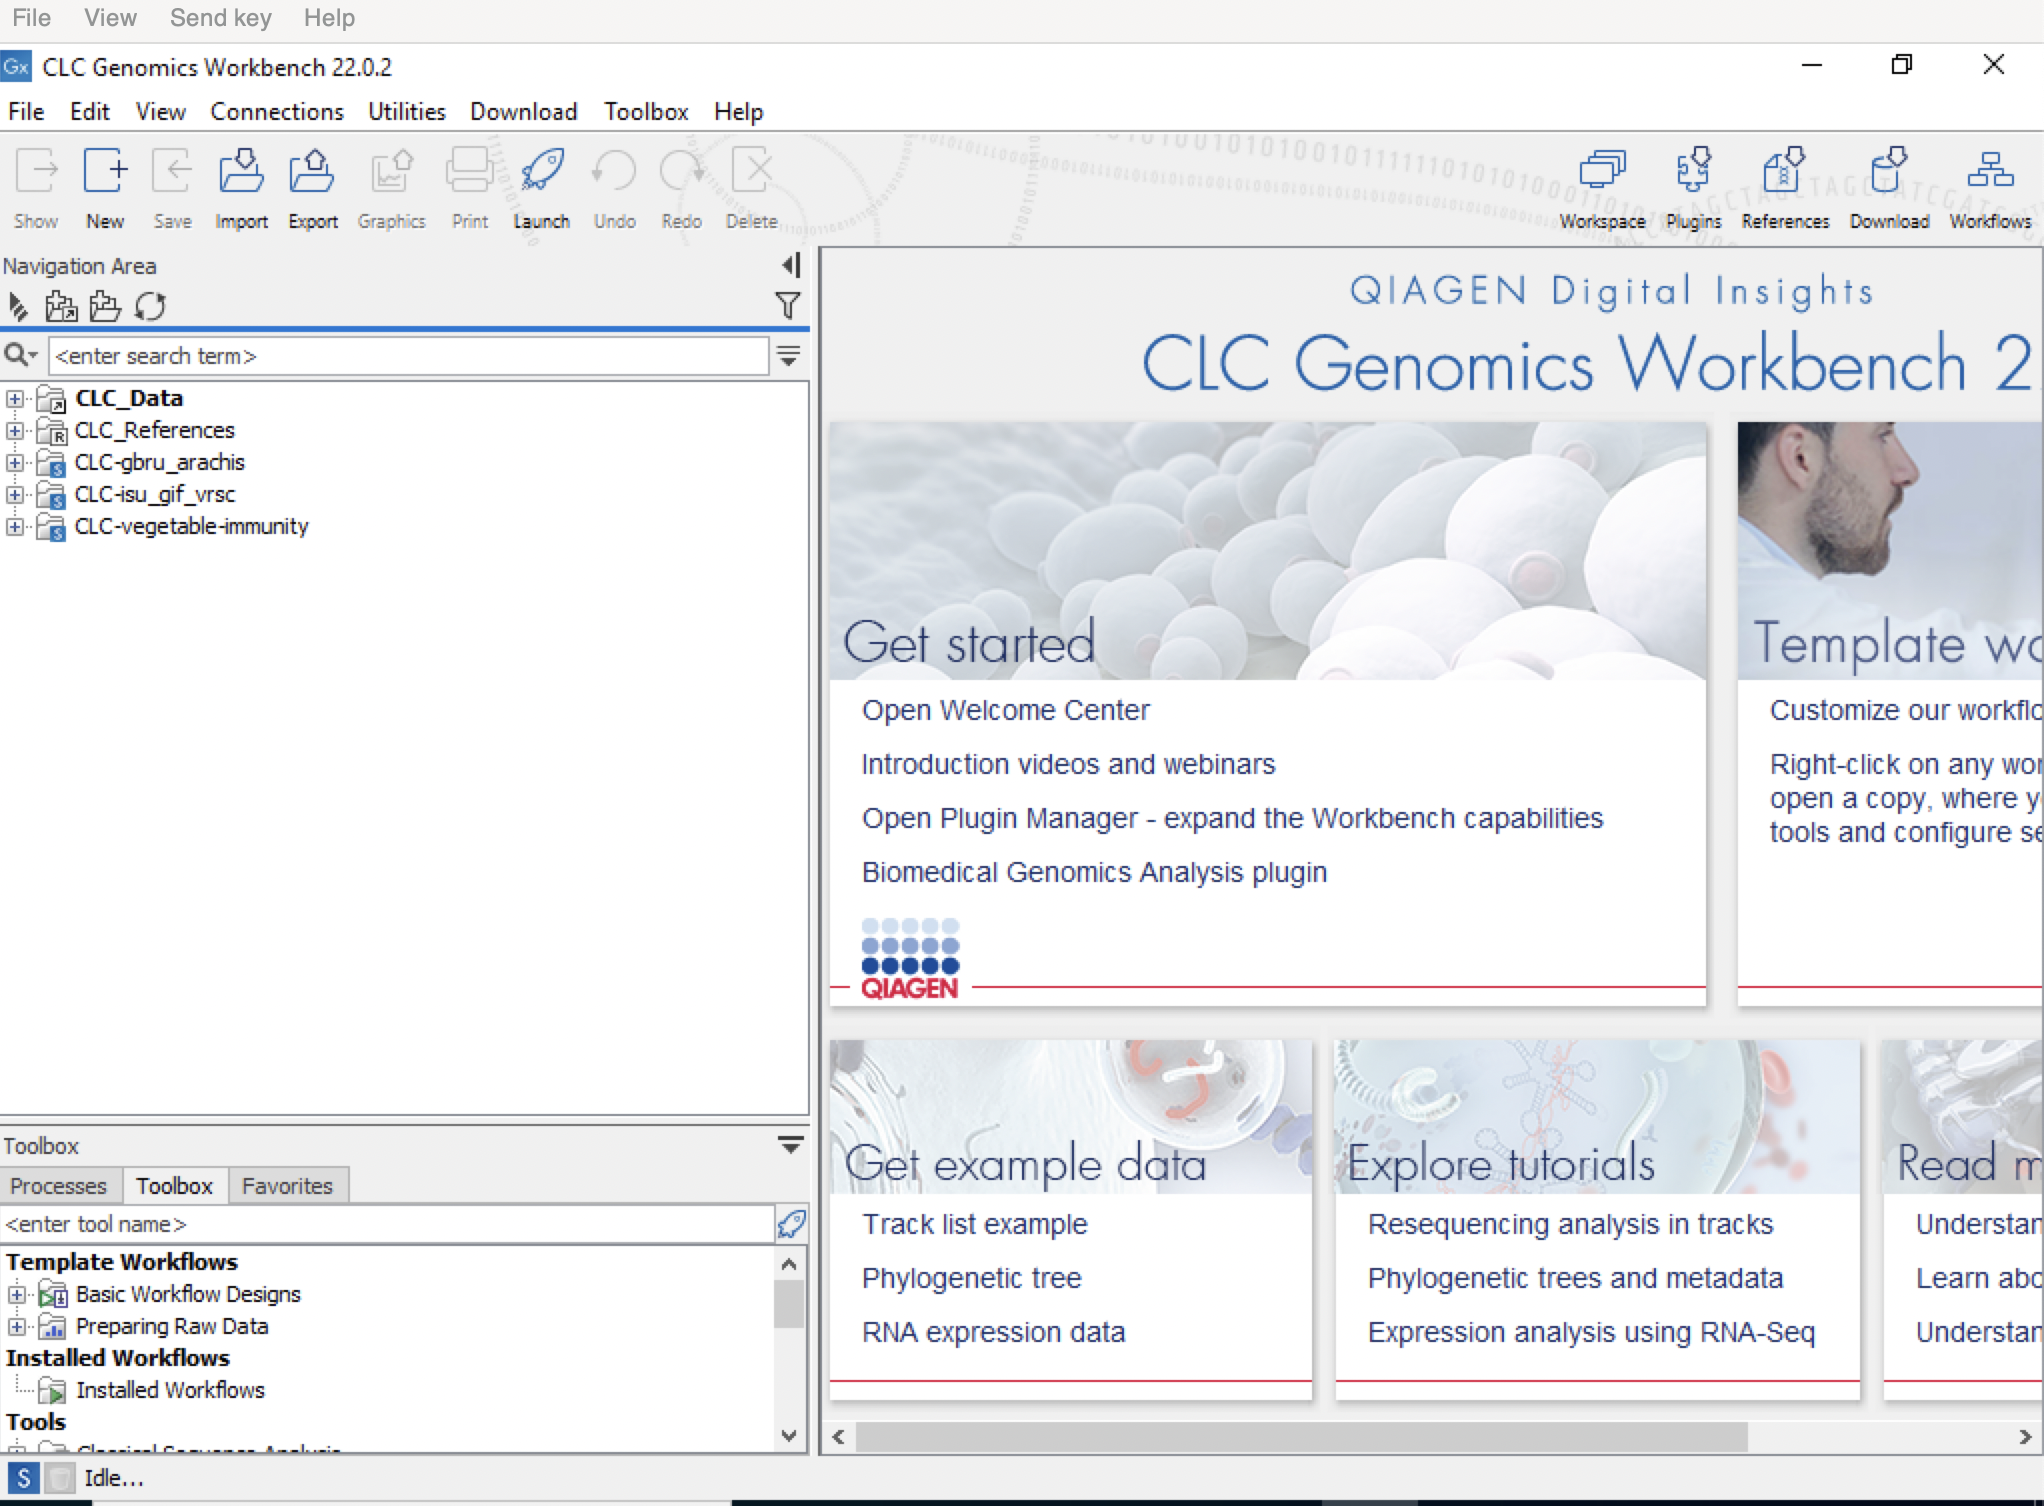 screenshot of CLC Genomics Workbench 11.0.1 software homescreen